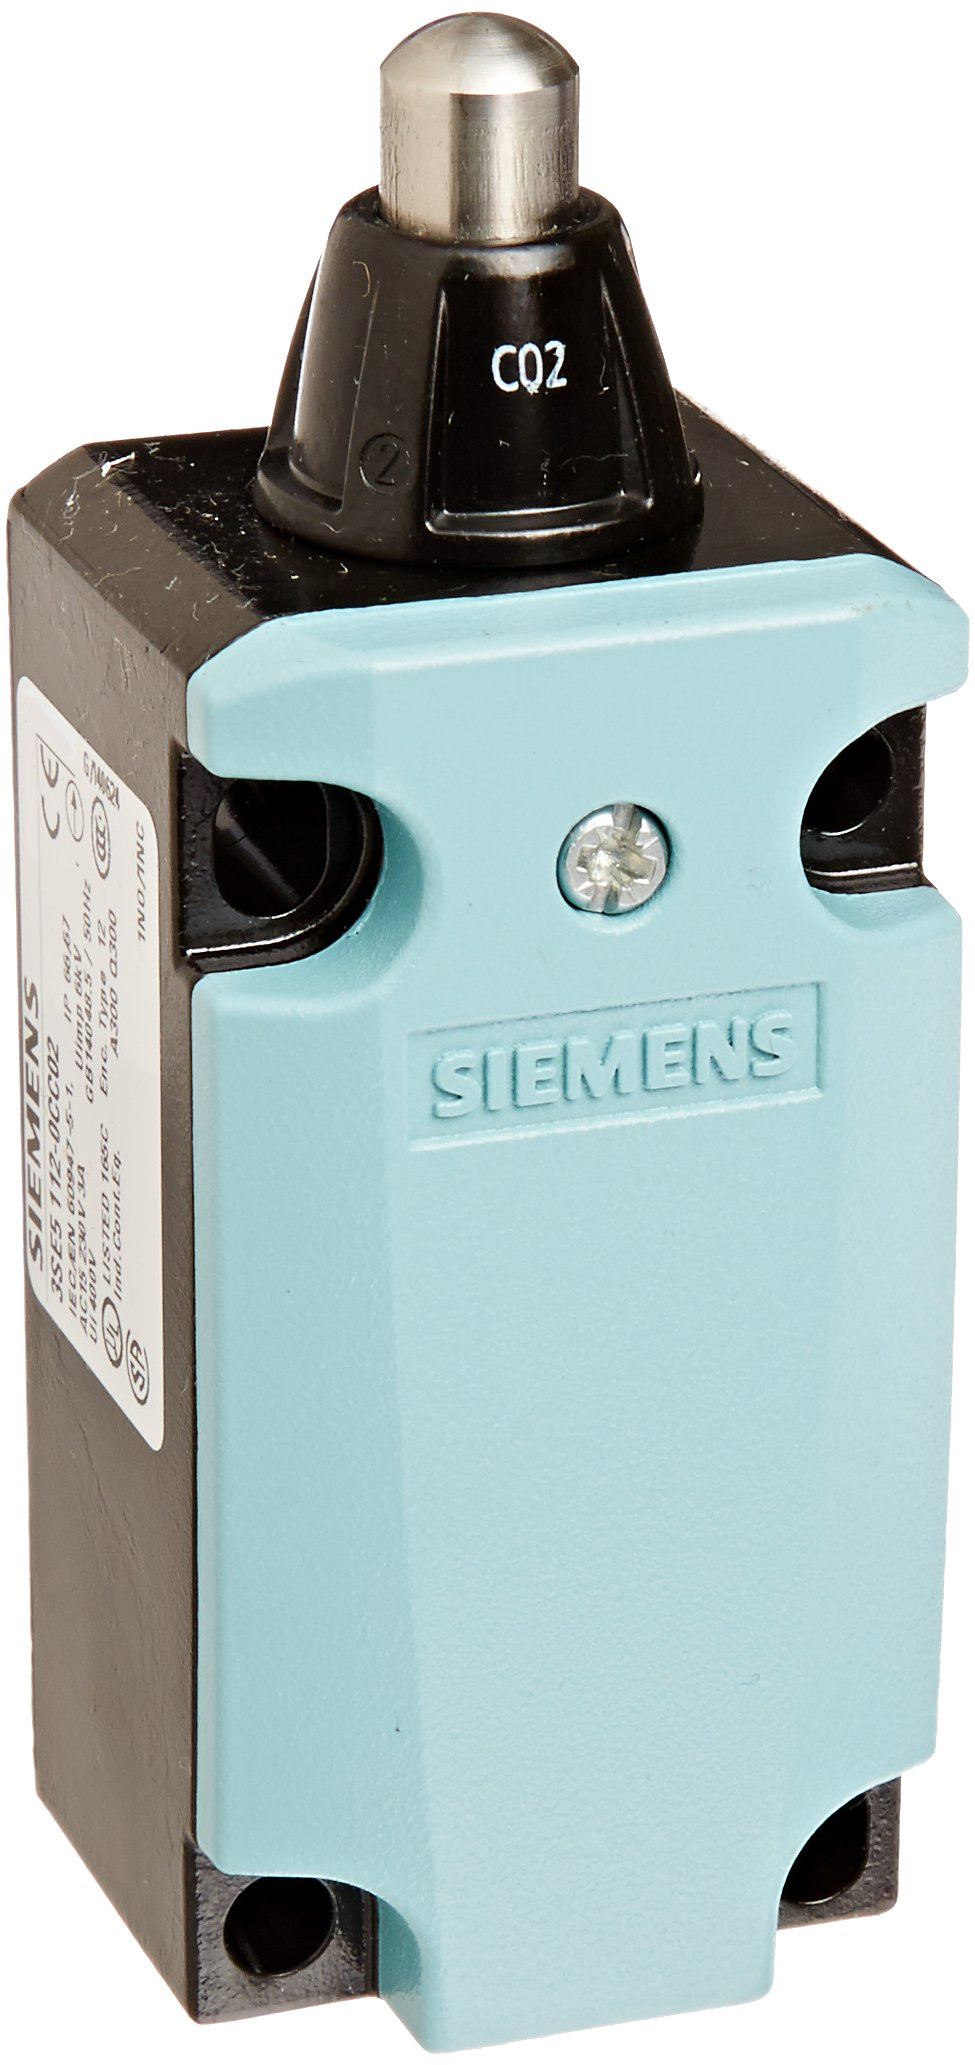 Siemens 3SE5 112-0CC02 International Limit Switch Complete Unit, Round Plunger, 40mm Metal Enclosure, High Grade Steel Plunger, 3mm Overtravel, Snap Action Contacts, 1 NO + 1 NC Contacts